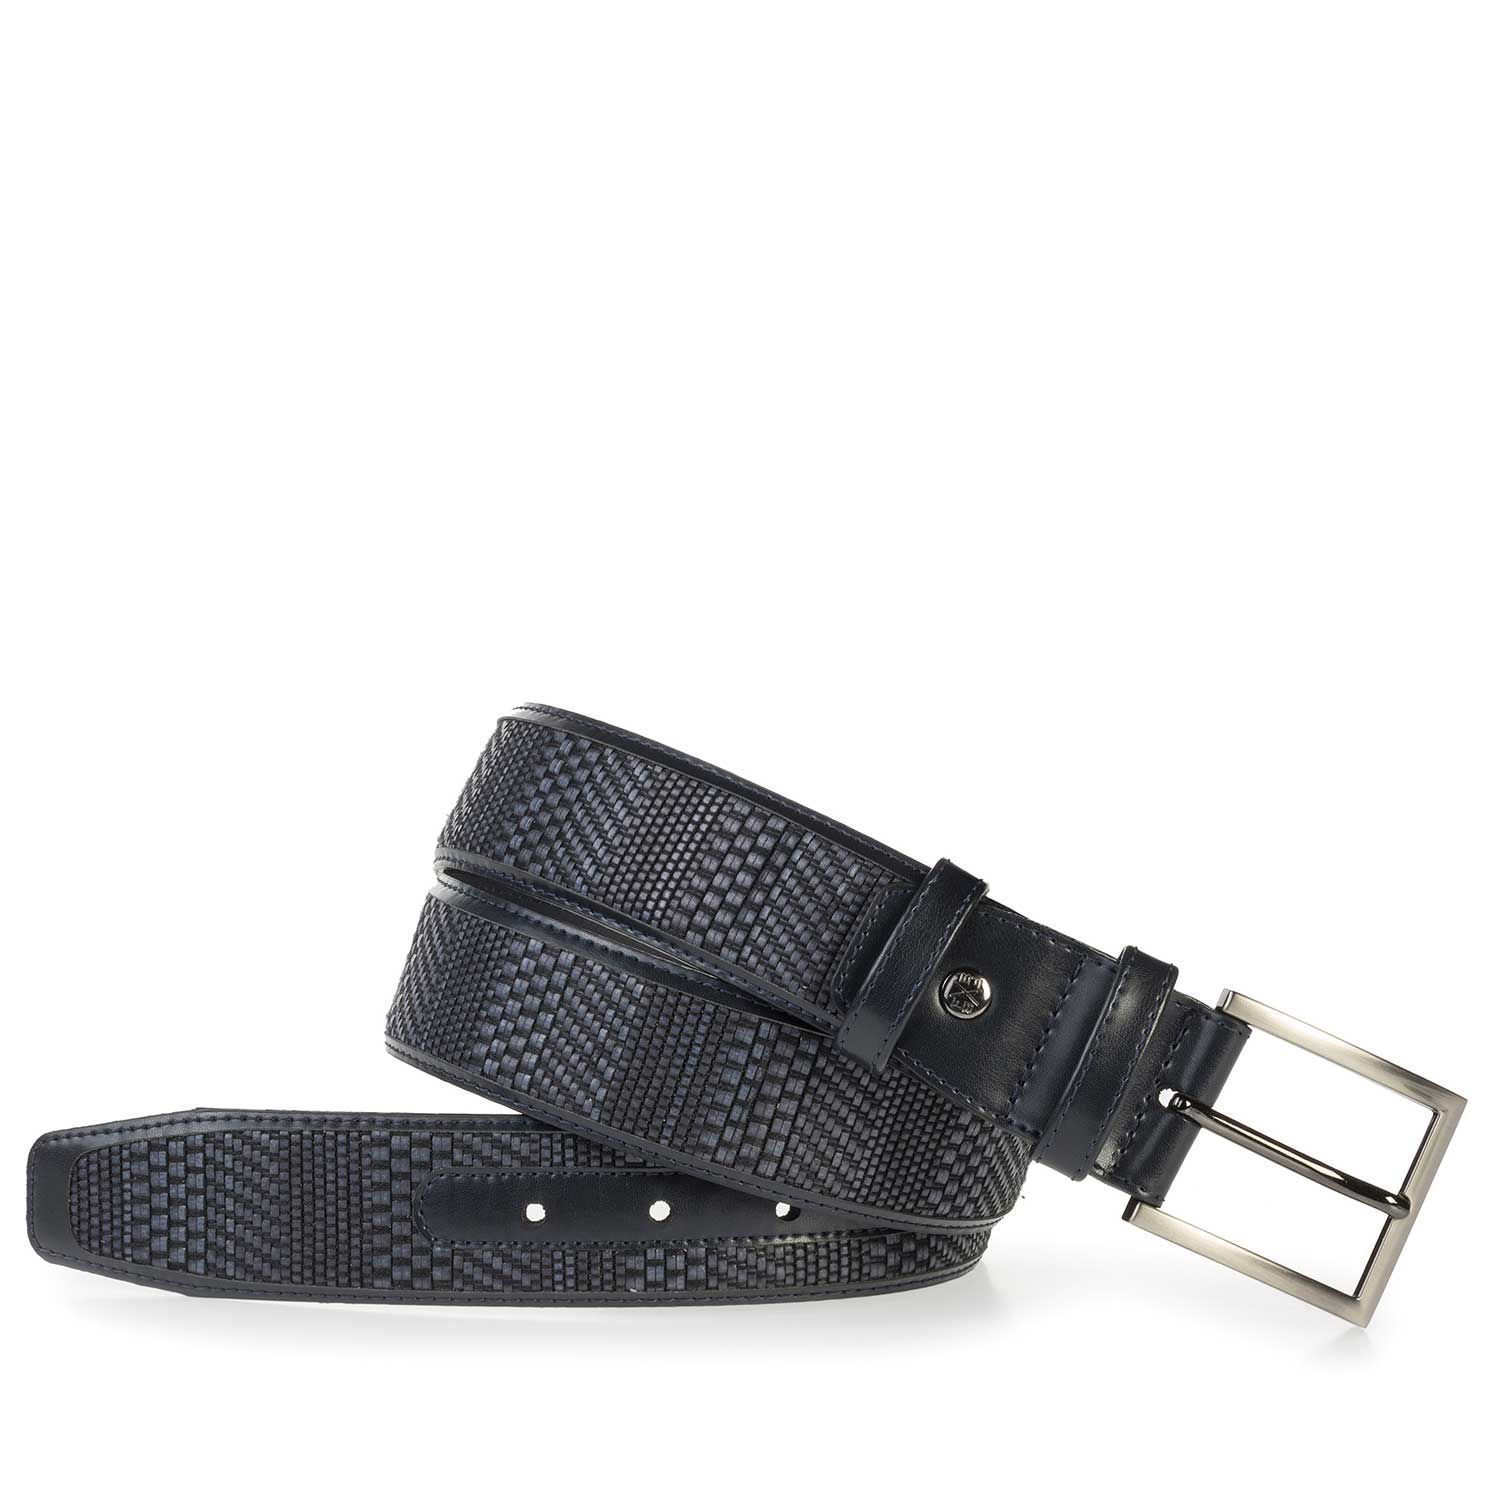 75159/04 - Blue belt made of braided leather